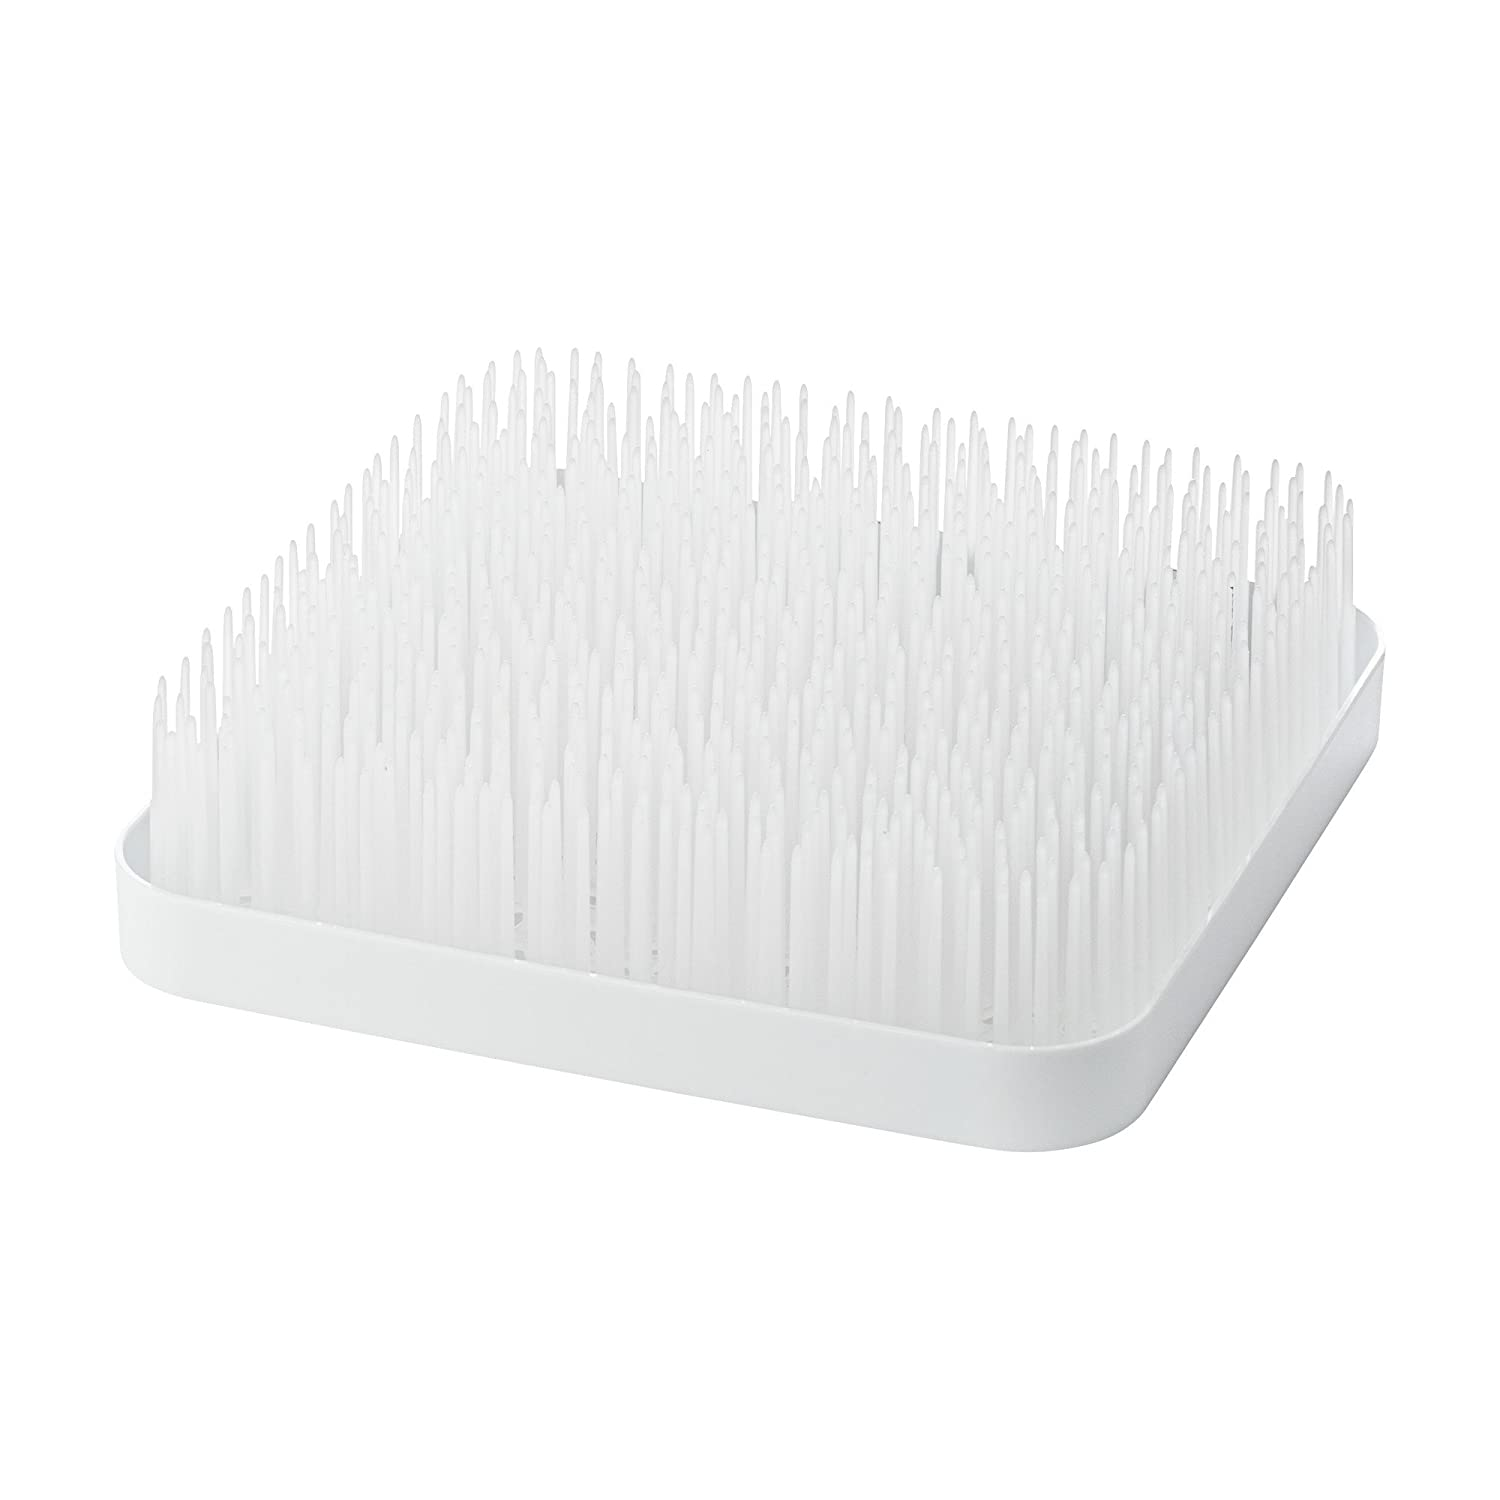 Boon Grass Countertop Drying Rack - Winter, White TOMY B376MP1